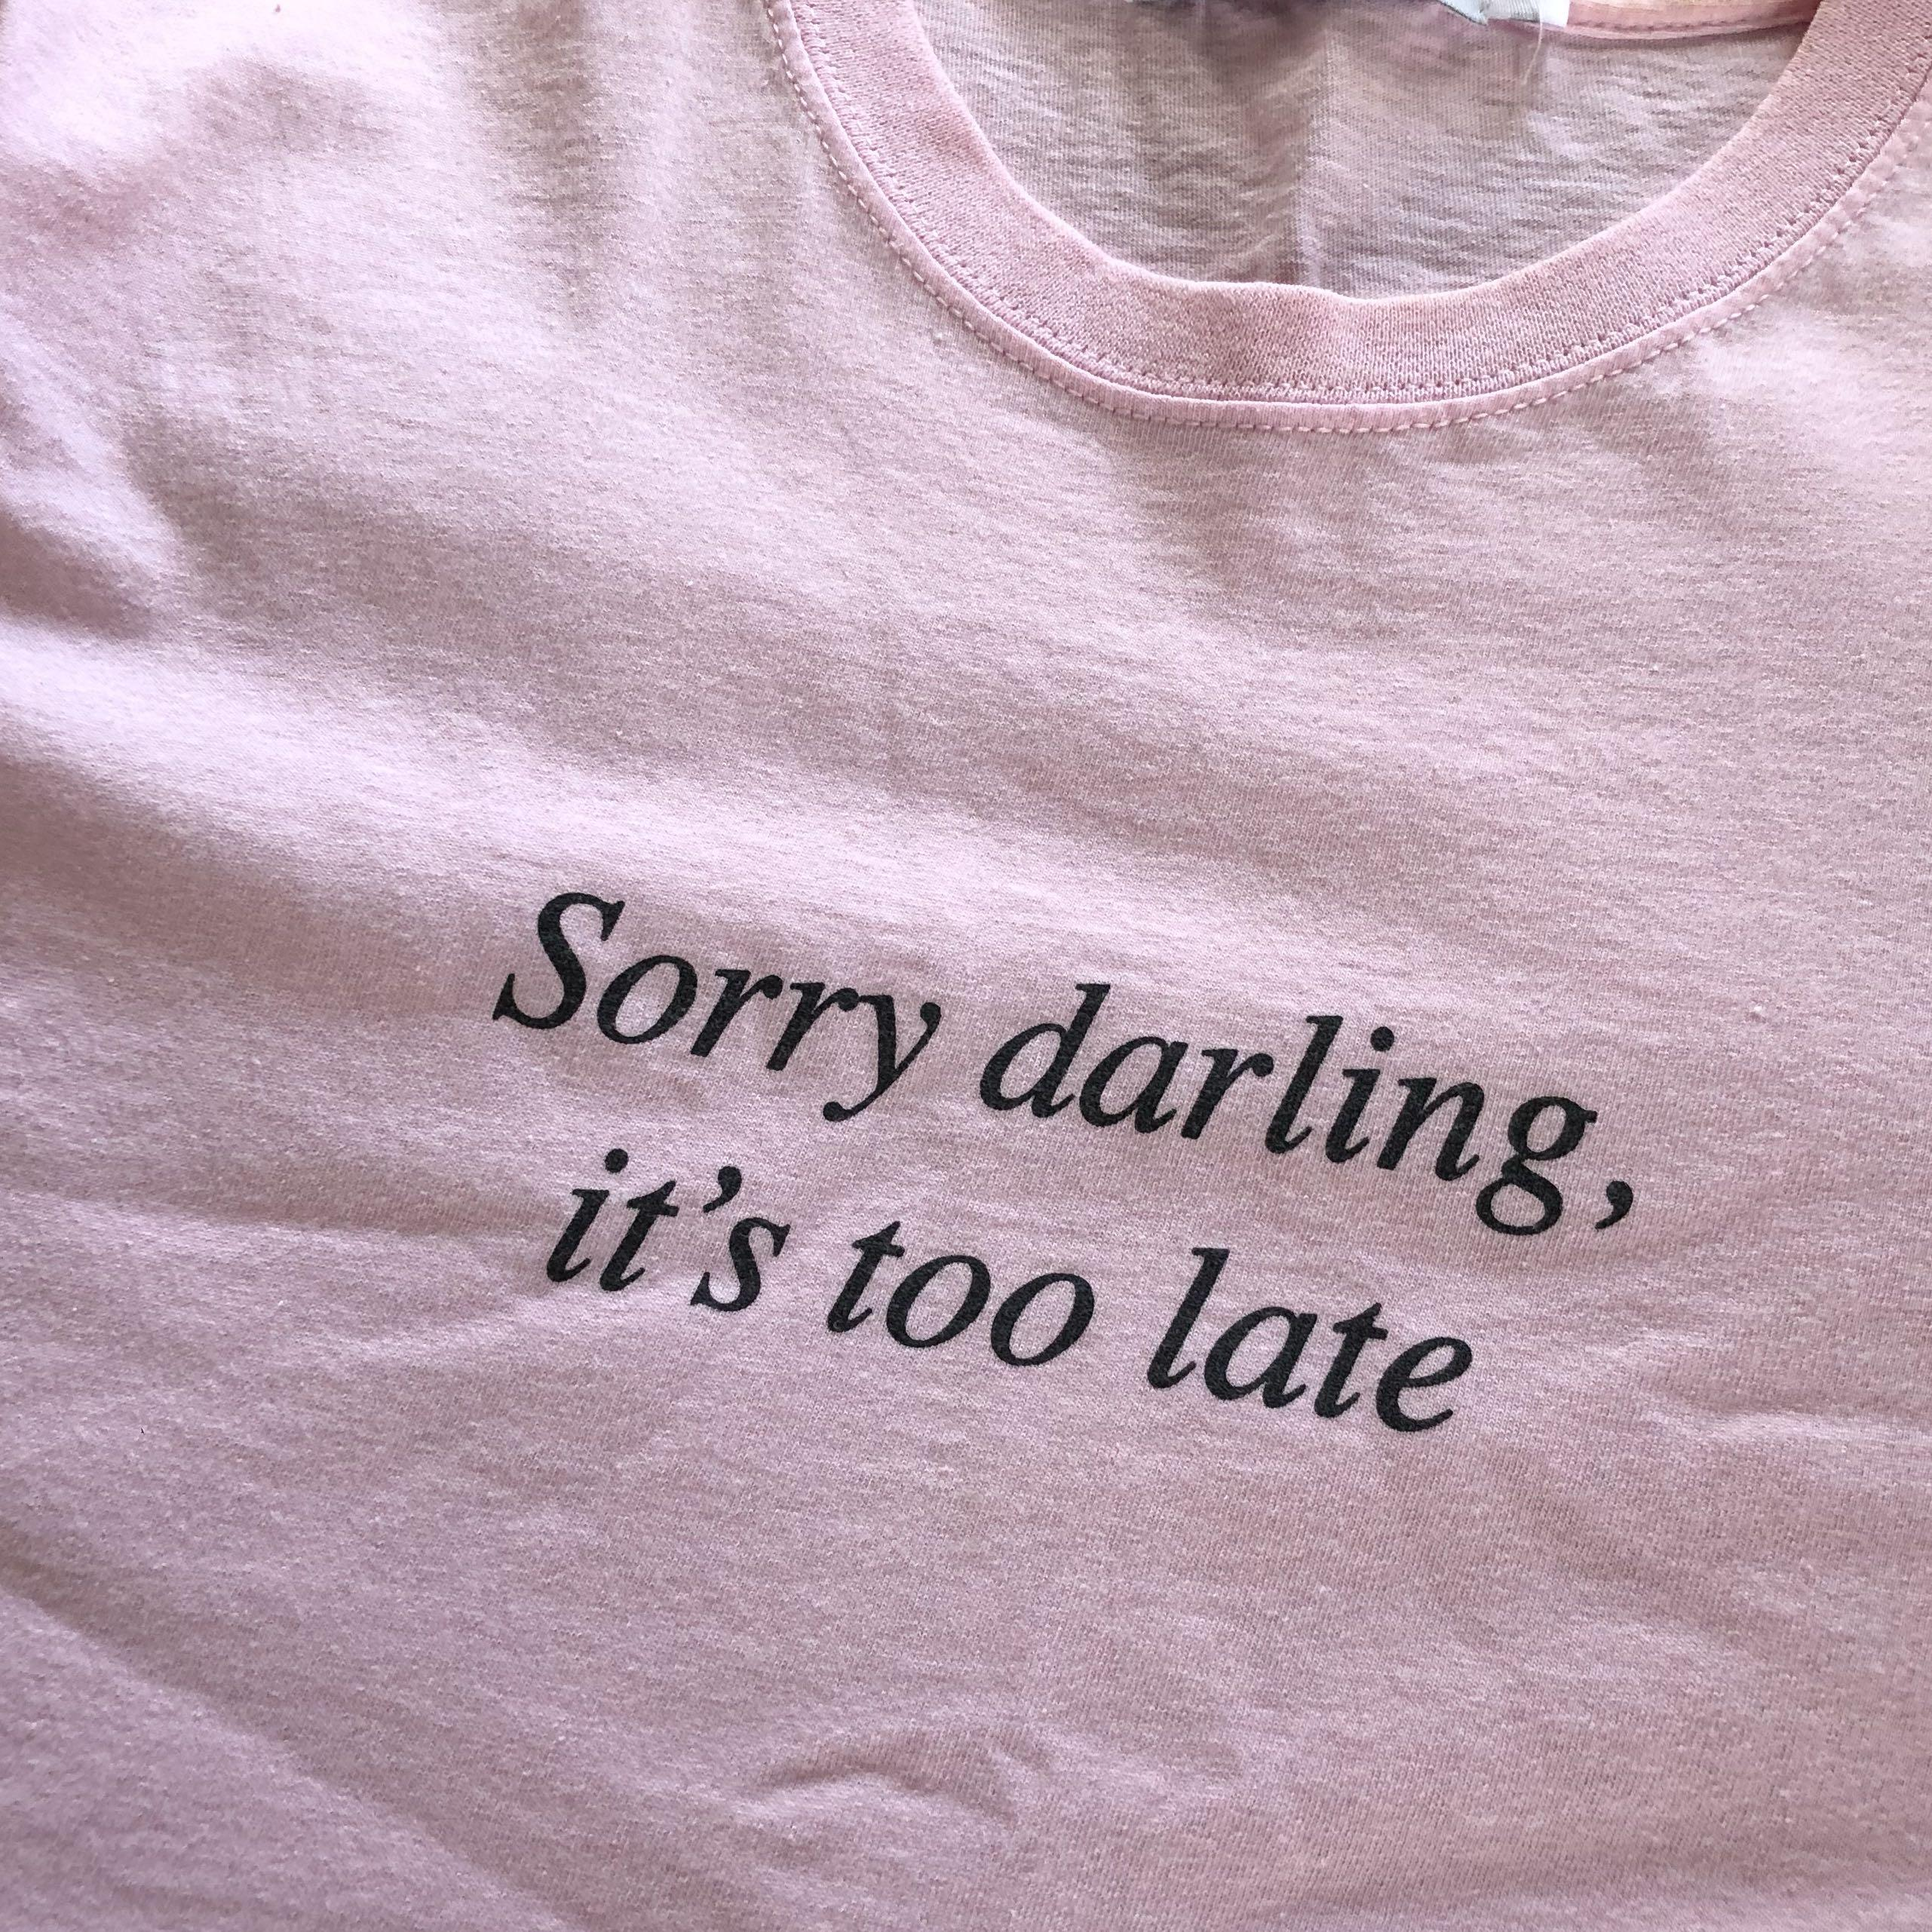 """Adolescent Clothing """"Sorry darling, it's too late"""" pink tee"""